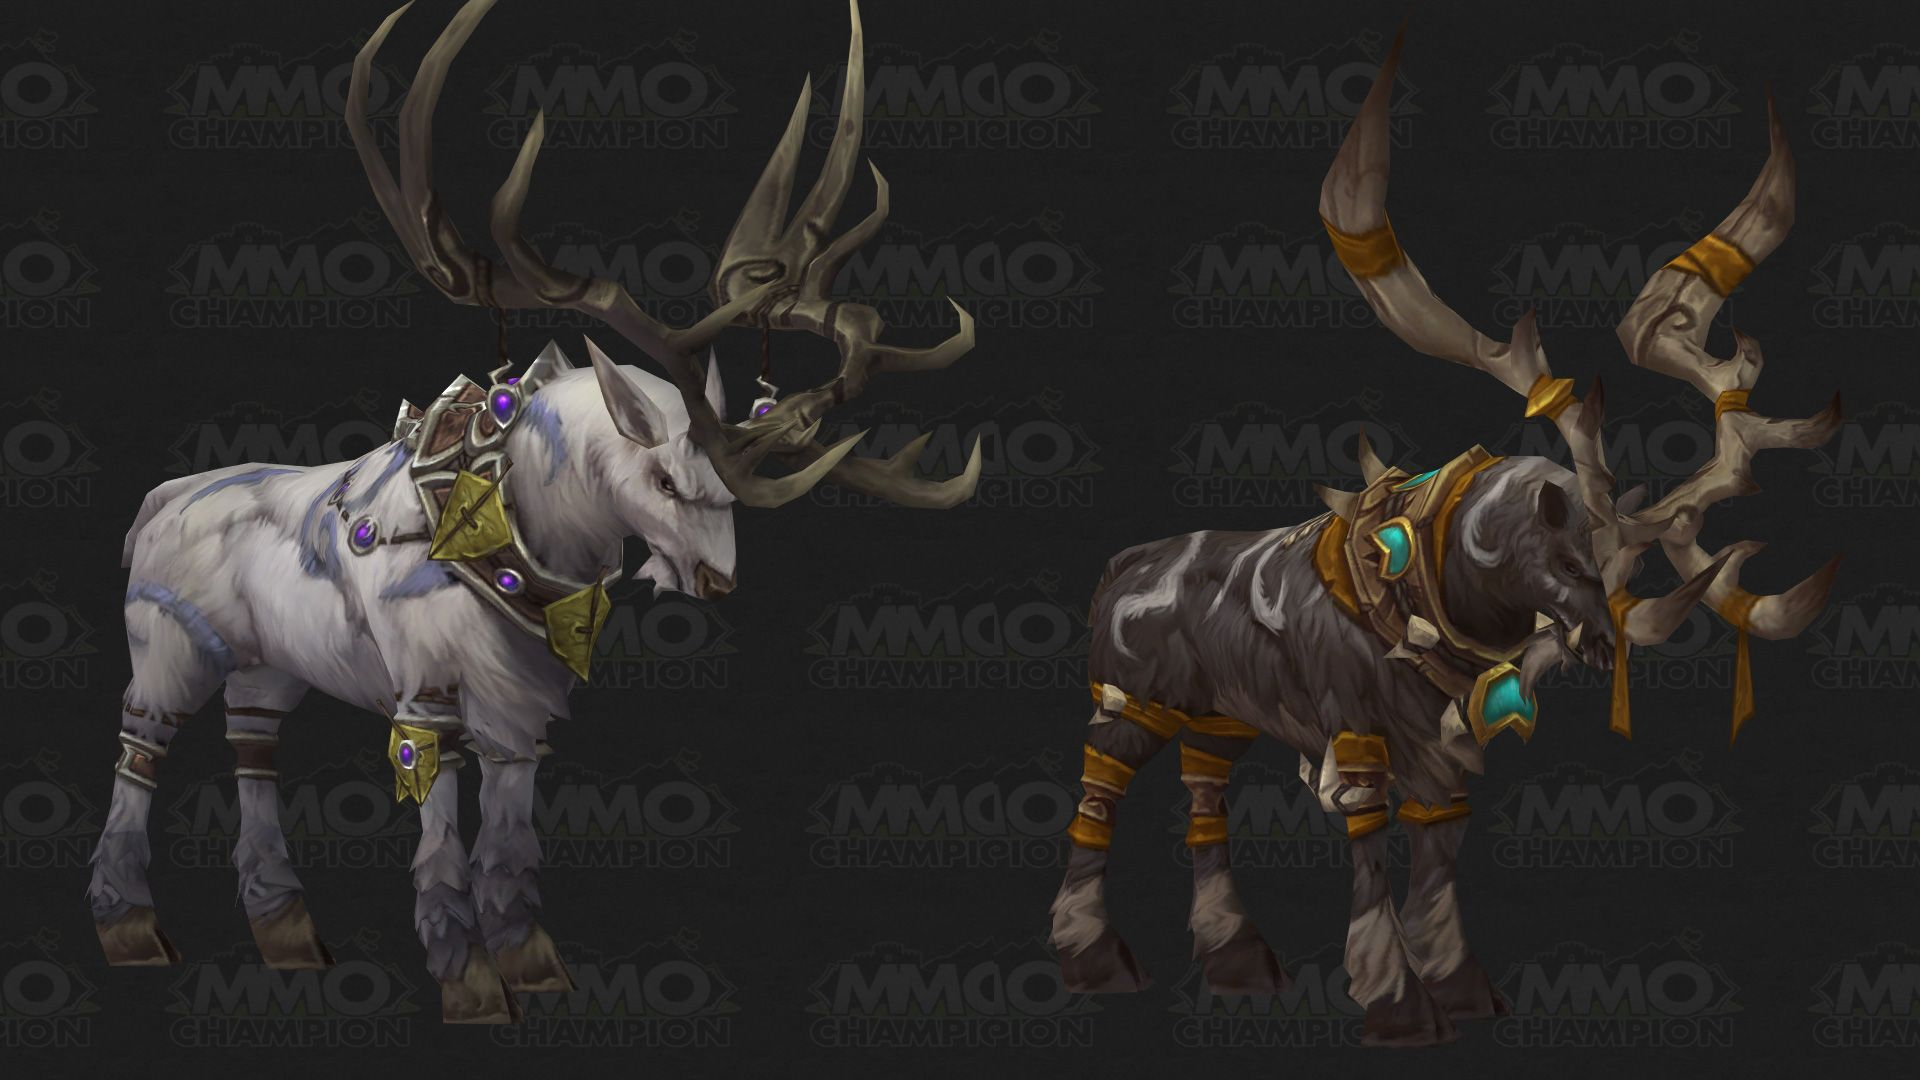 Mmo champion world of warcraft druid form cant wait what mmo champion world of warcraft druid form cant wait nvjuhfo Choice Image